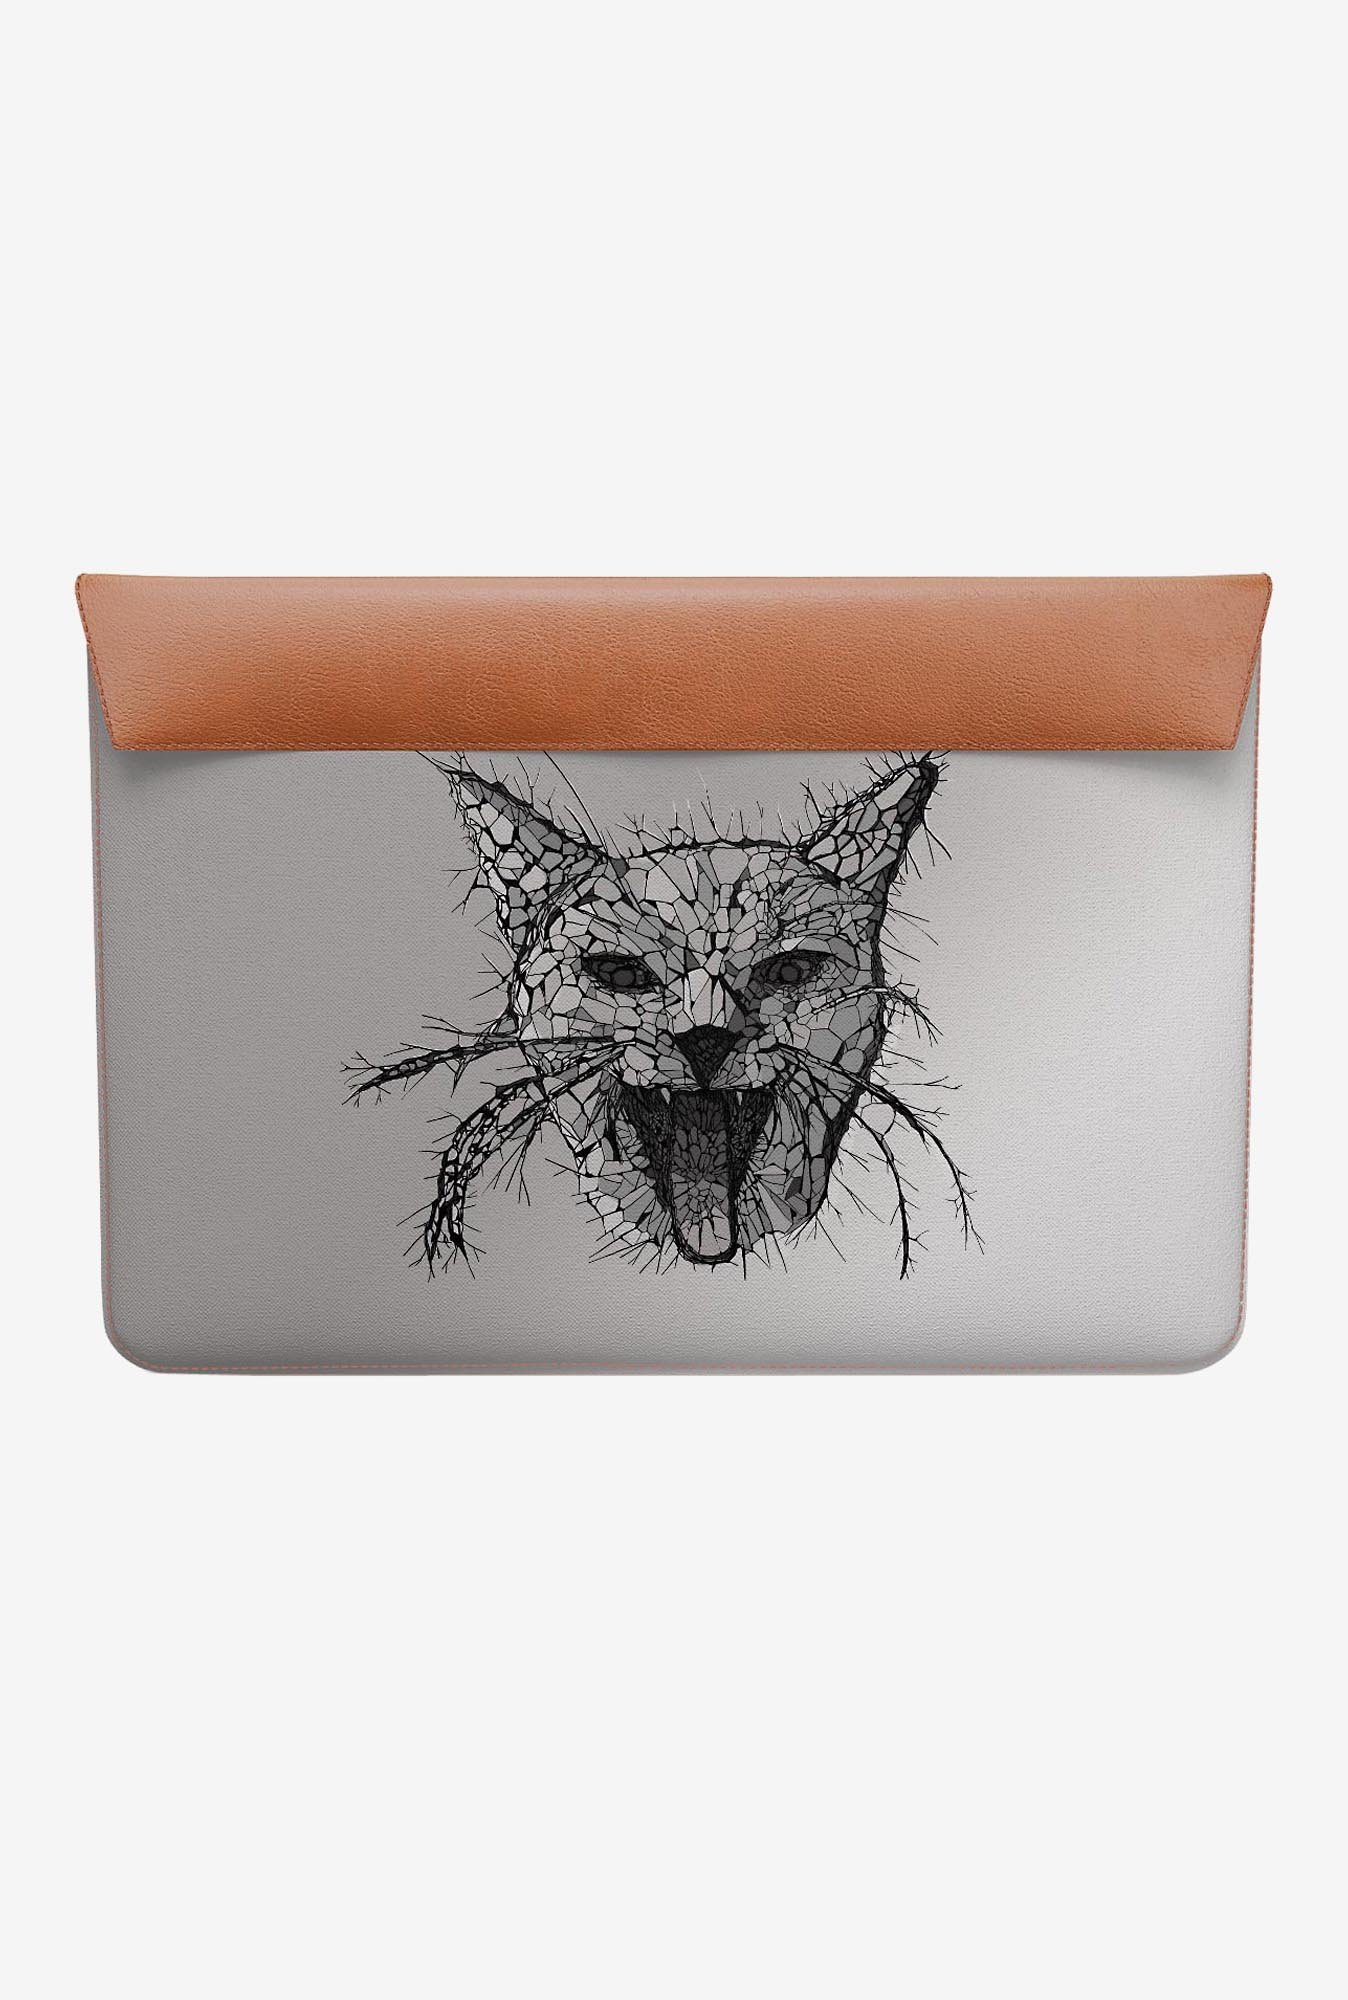 DailyObjects Mosaic Cat MacBook 12 Envelope Sleeve